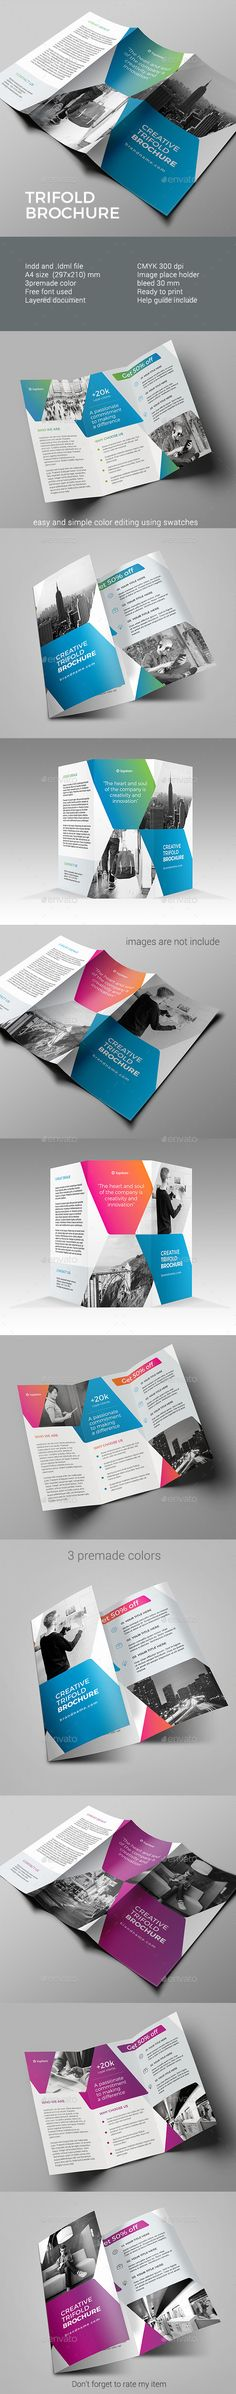 Trifold Brochure  — InDesign Template #triangle #clean • Download ➝ https://graphicriver.net/item/trifold-brochure/18368844?ref=pxcr